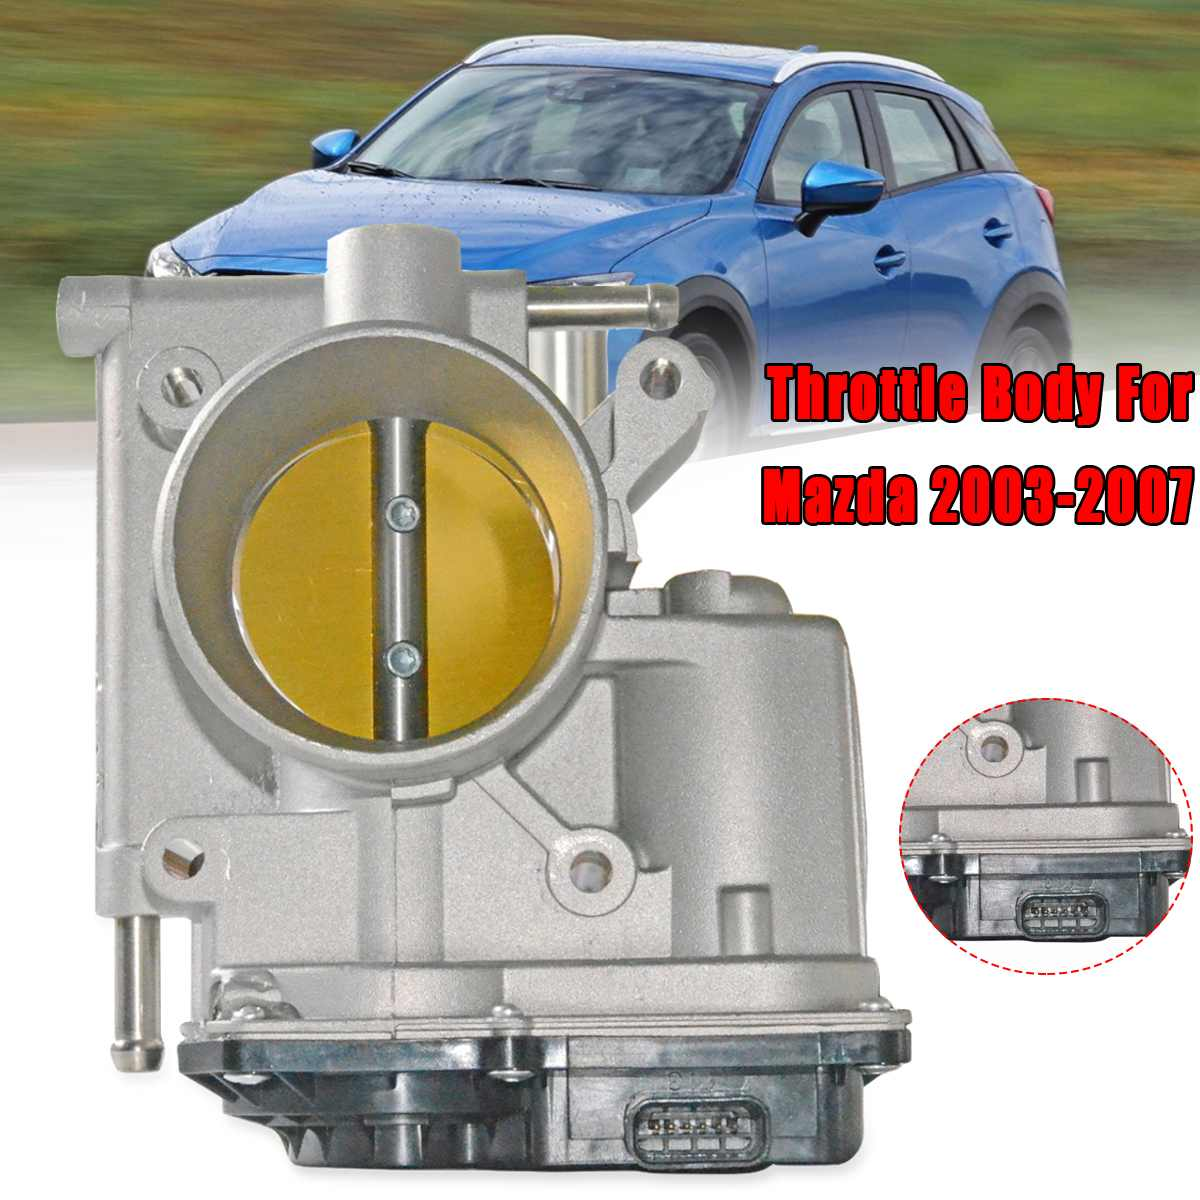 L32113640G E101284 Throttle Body For Mazda 3/5/6 03 07 2.0L & 2.3L Motor Metal Air Intake System Auto Replacement Parts